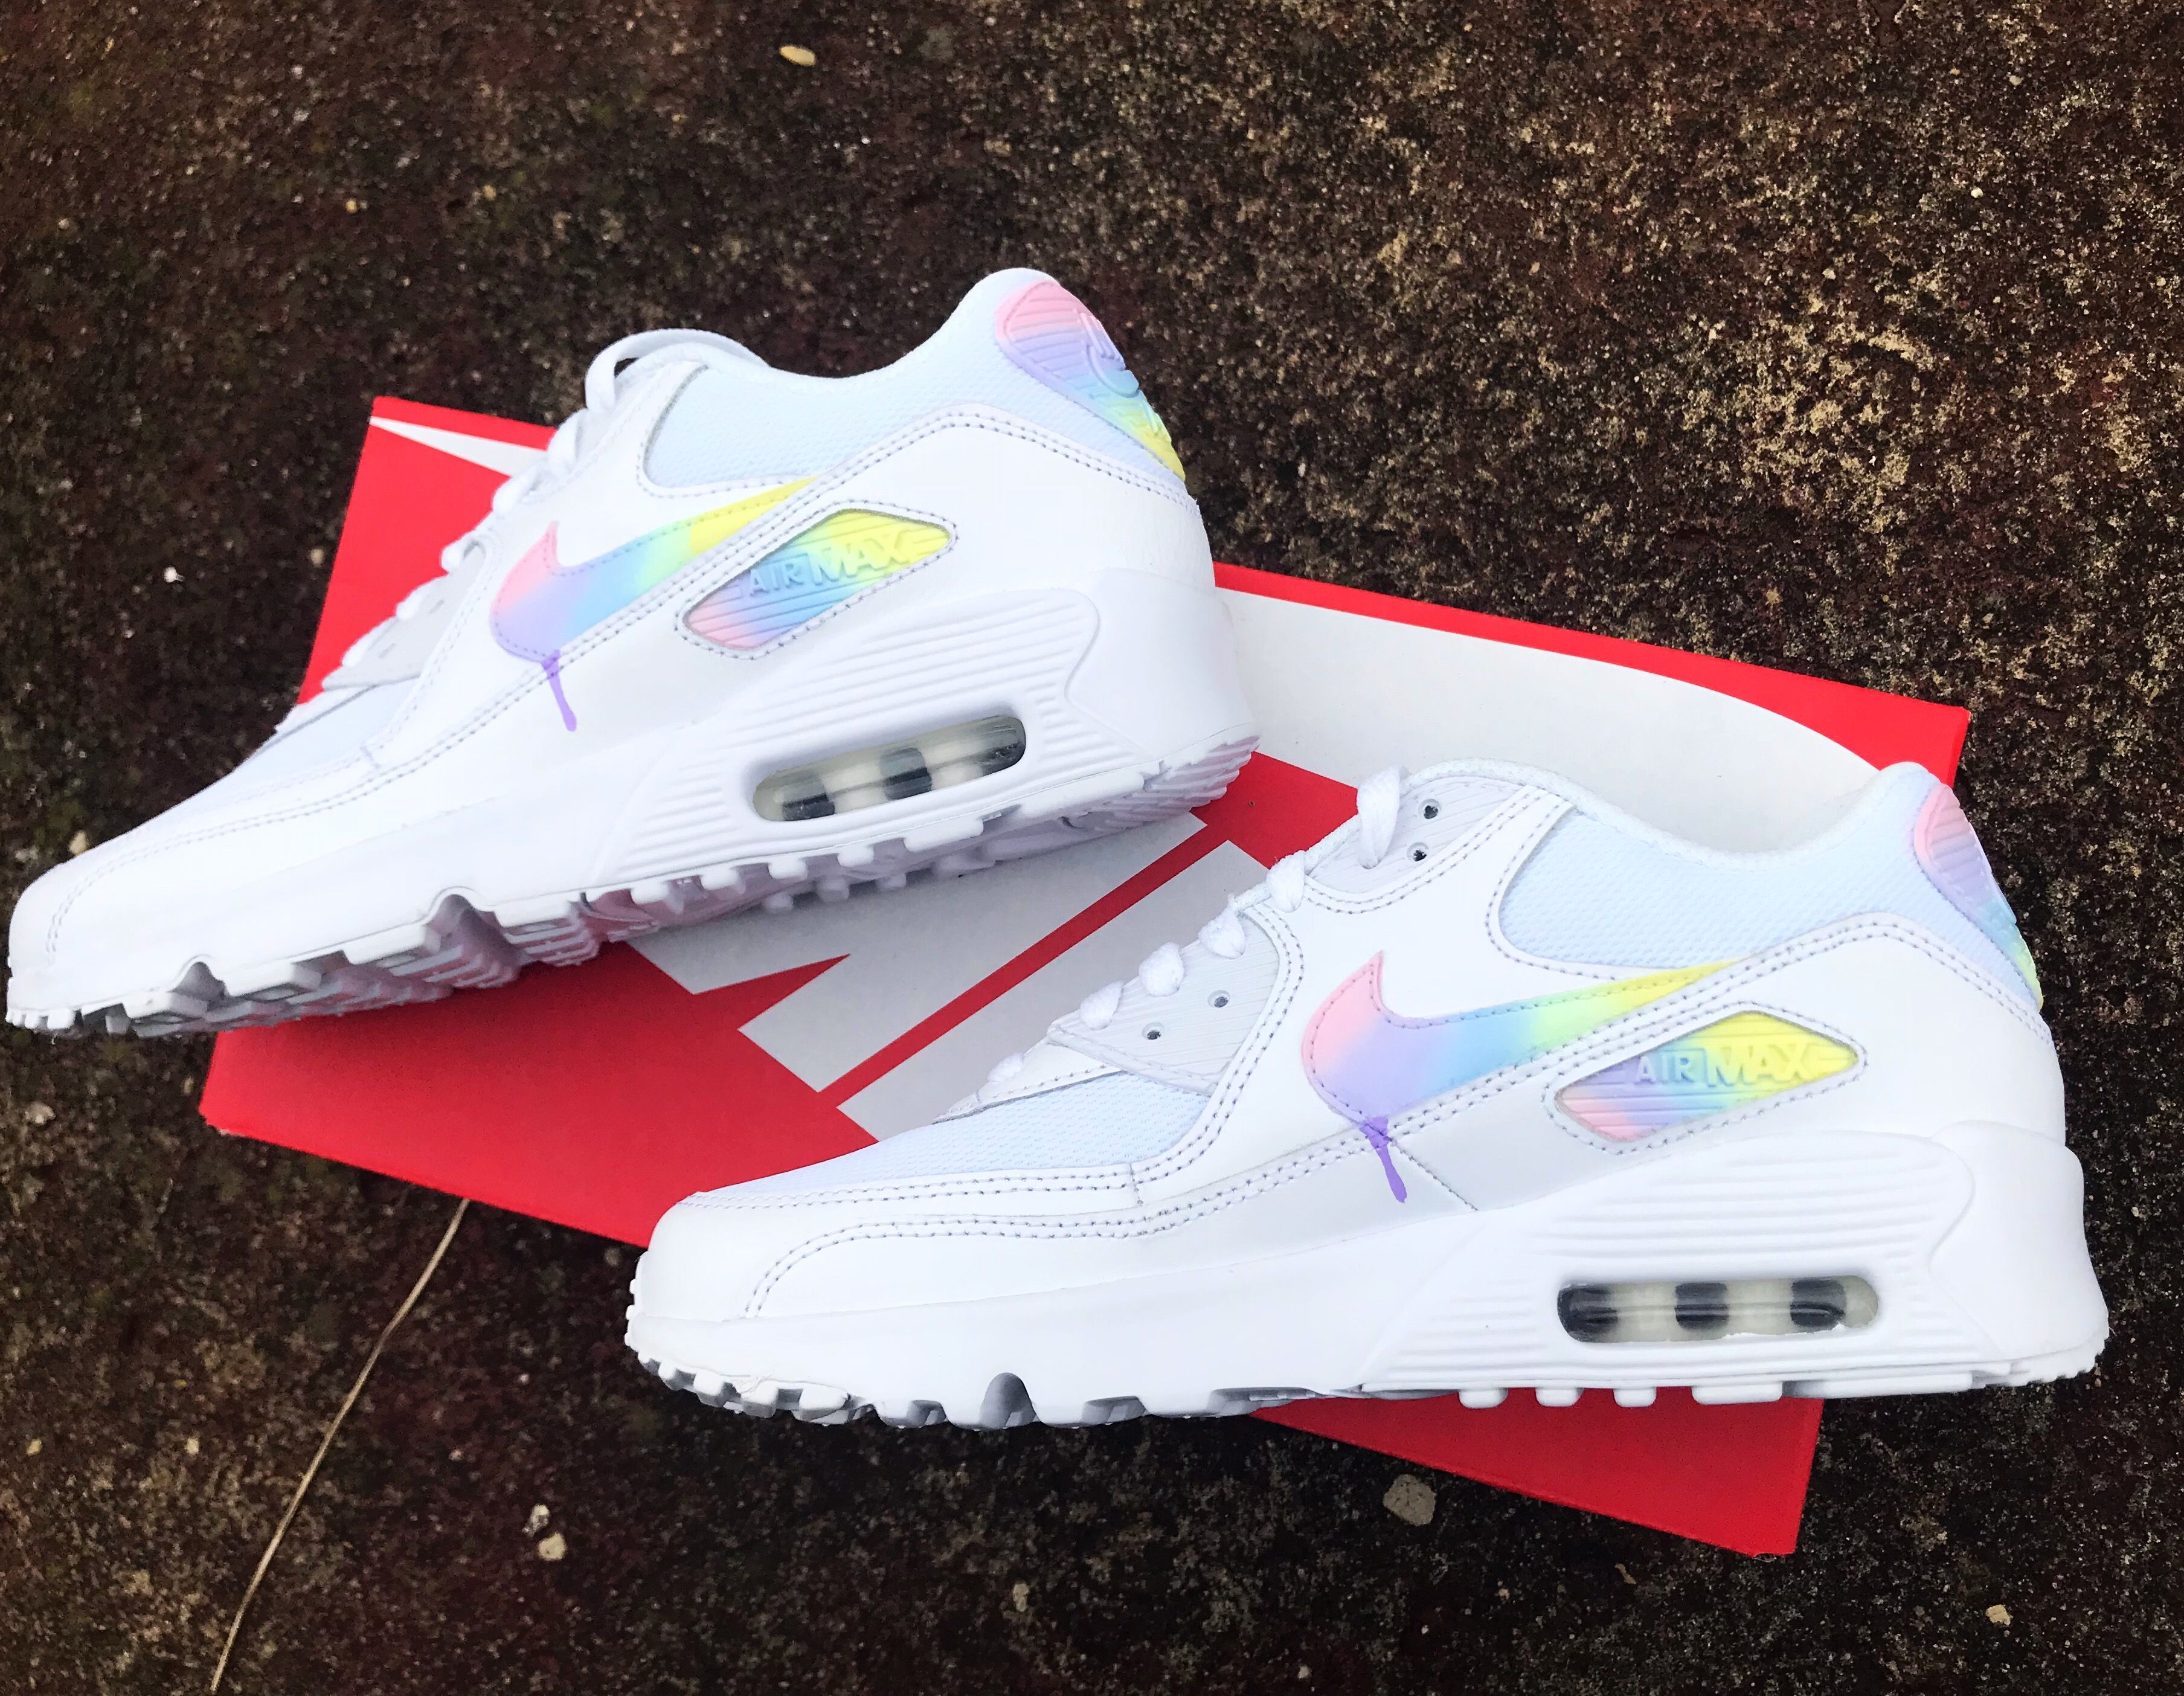 competitive price 81106 a7aa6 Nike unicorn 🦄   Custom shoe collection   Nike air max, Nike, Sneakers